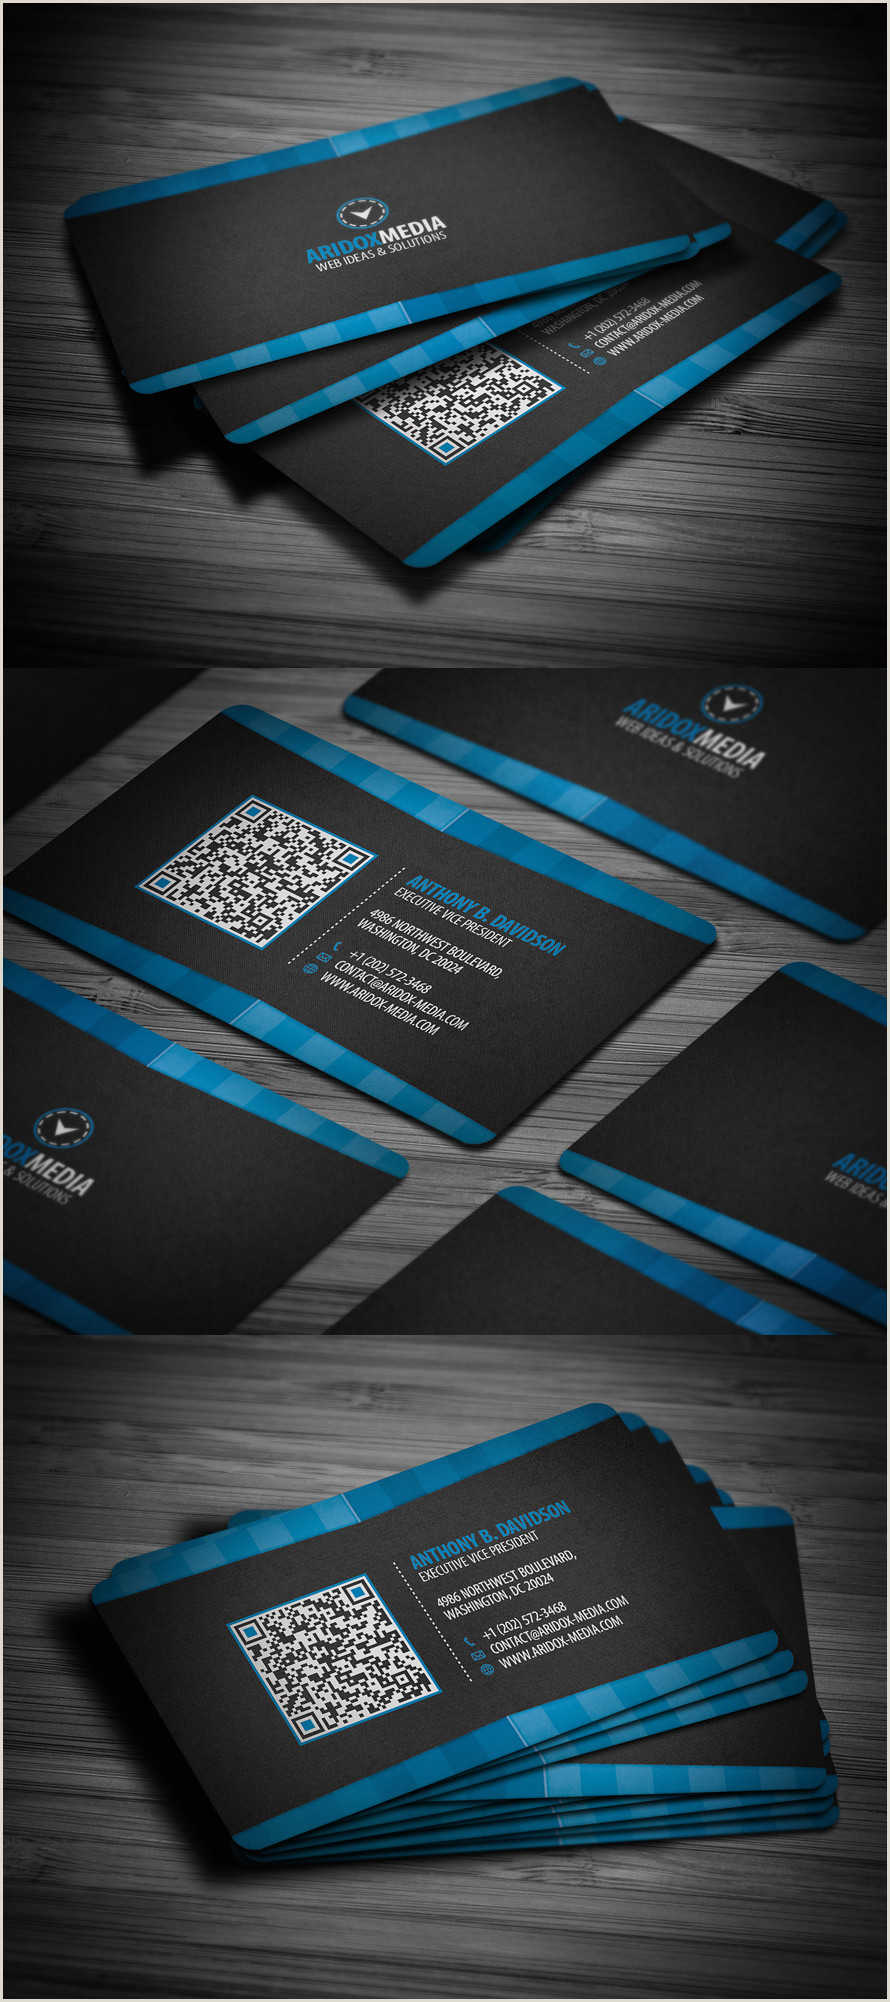 Best Business Cards With Photo Professional Corporate Business Card By Flowpixel On